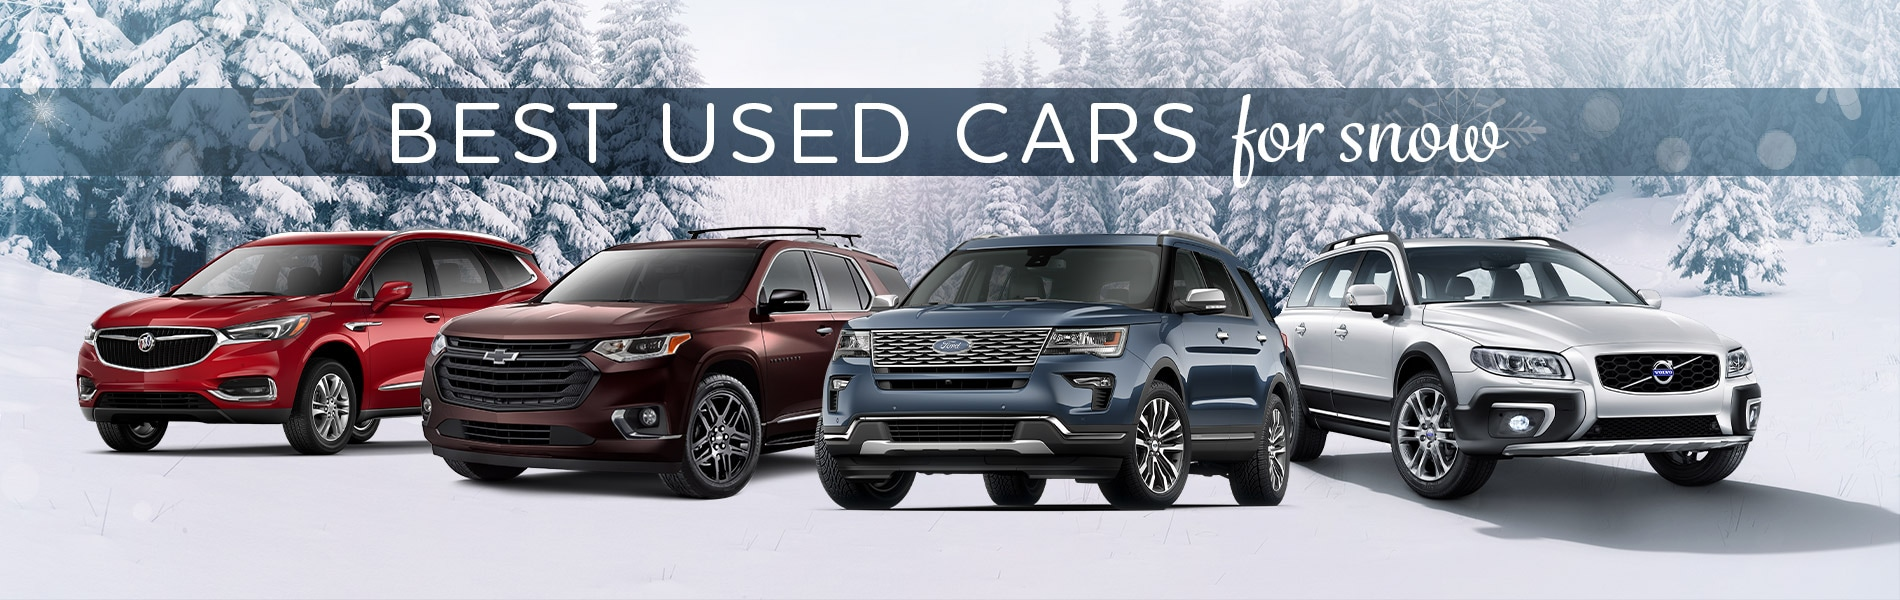 Best Used Cars For Snow | Fort Wayne, IN